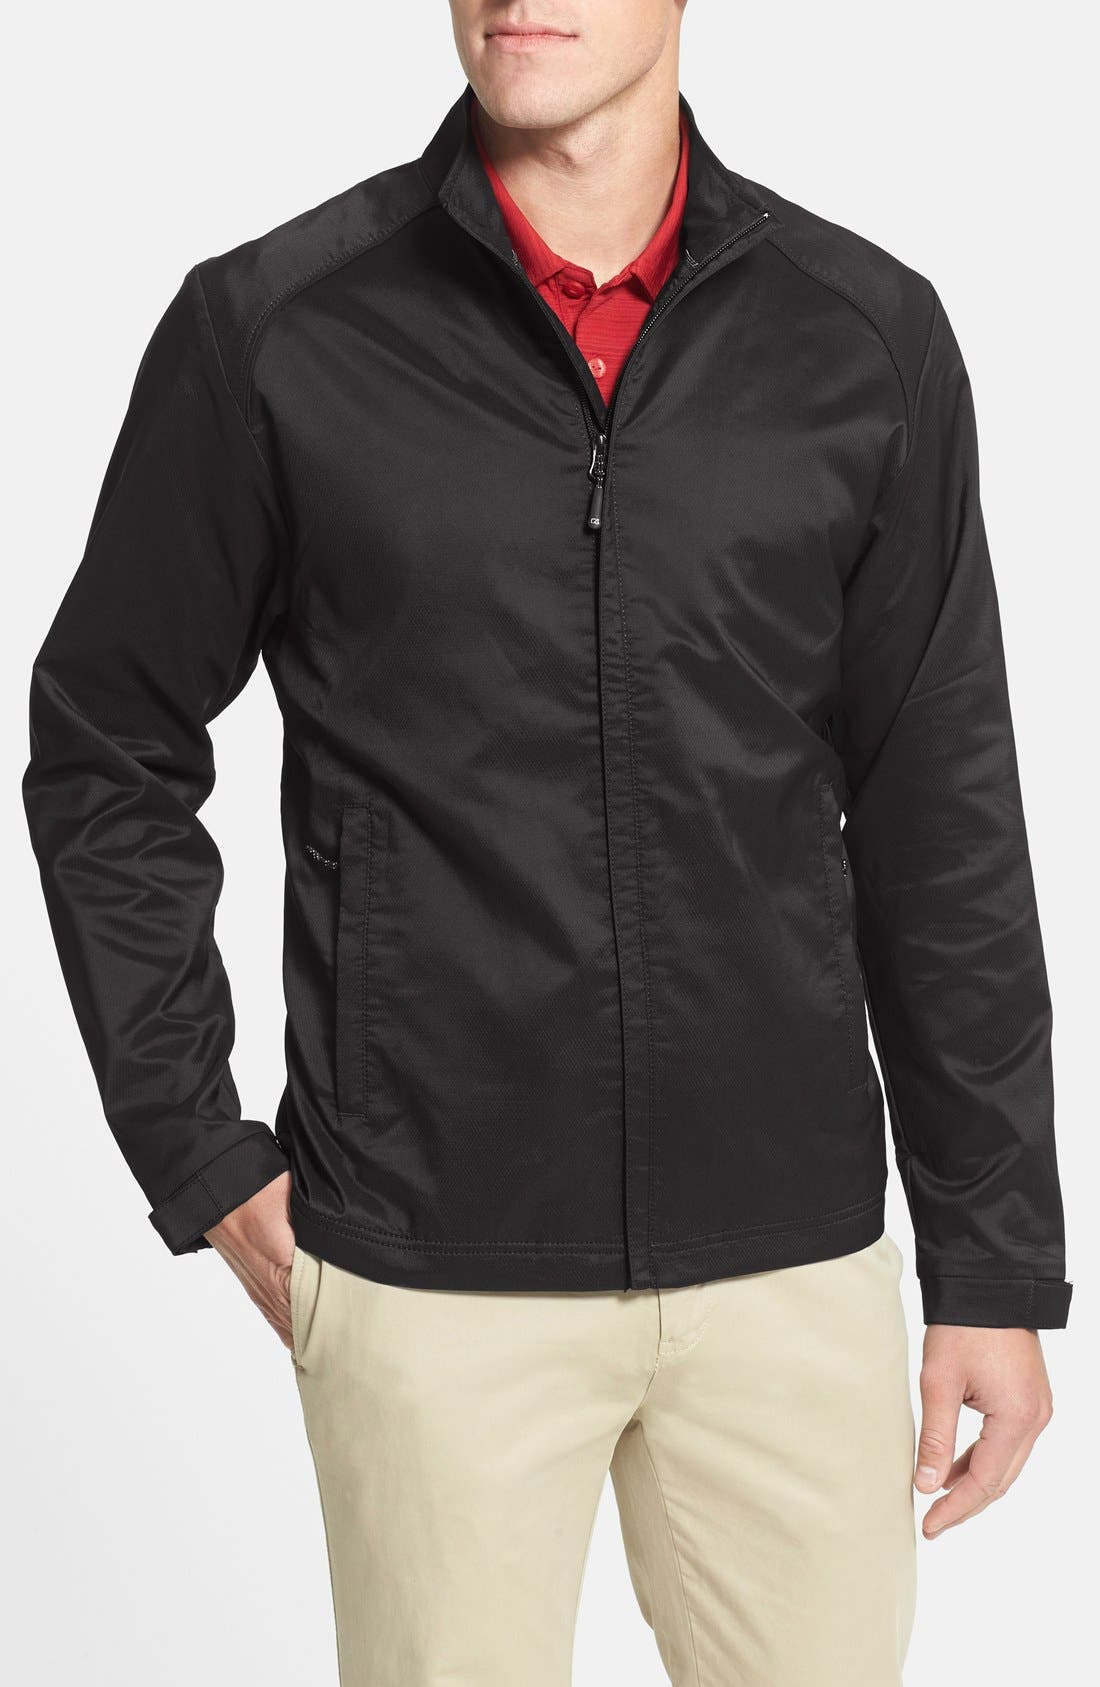 'Blakely' WeatherTec<sup>®</sup> Wind & Water Resistant Full Zip Jacket,                         Main,                         color, BLACK